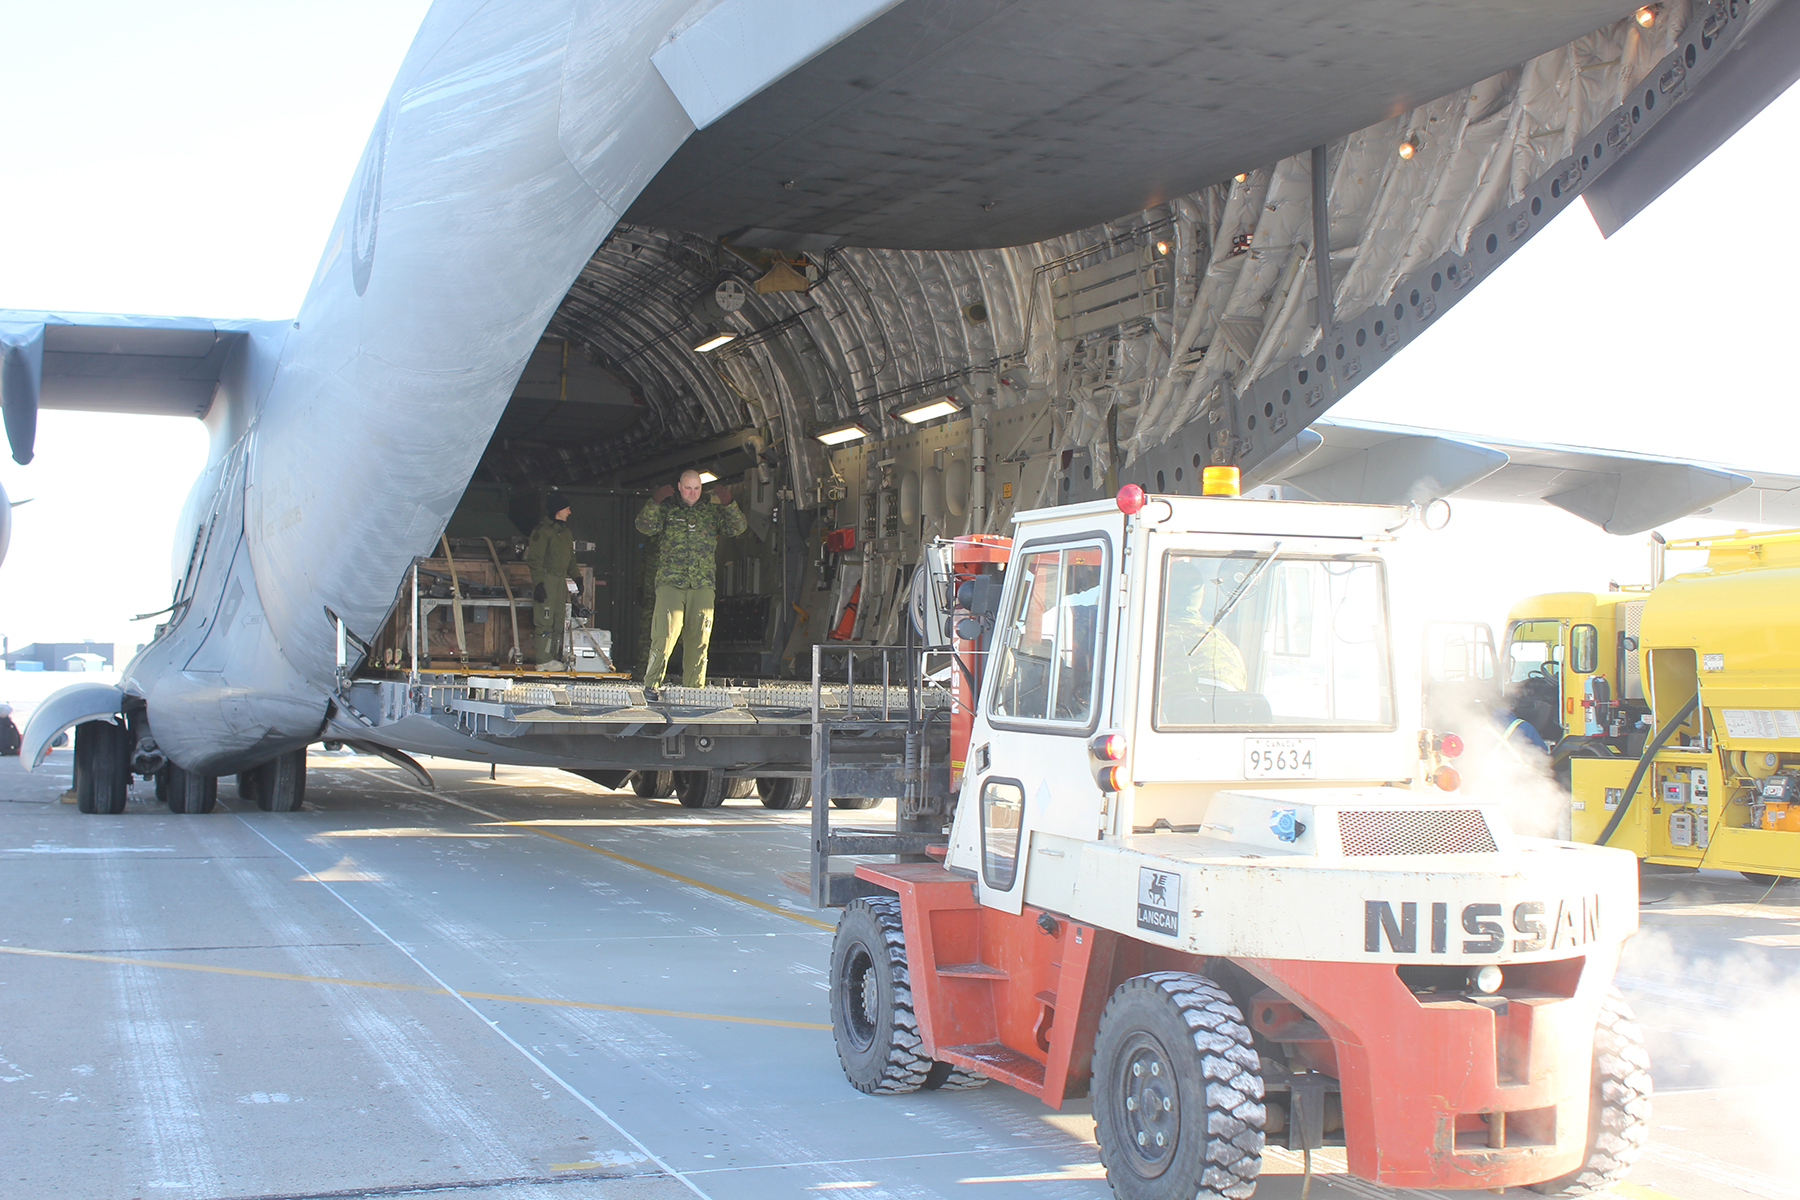 A front-end loader positions itself behind the open cargo ramp of a large aircraft.